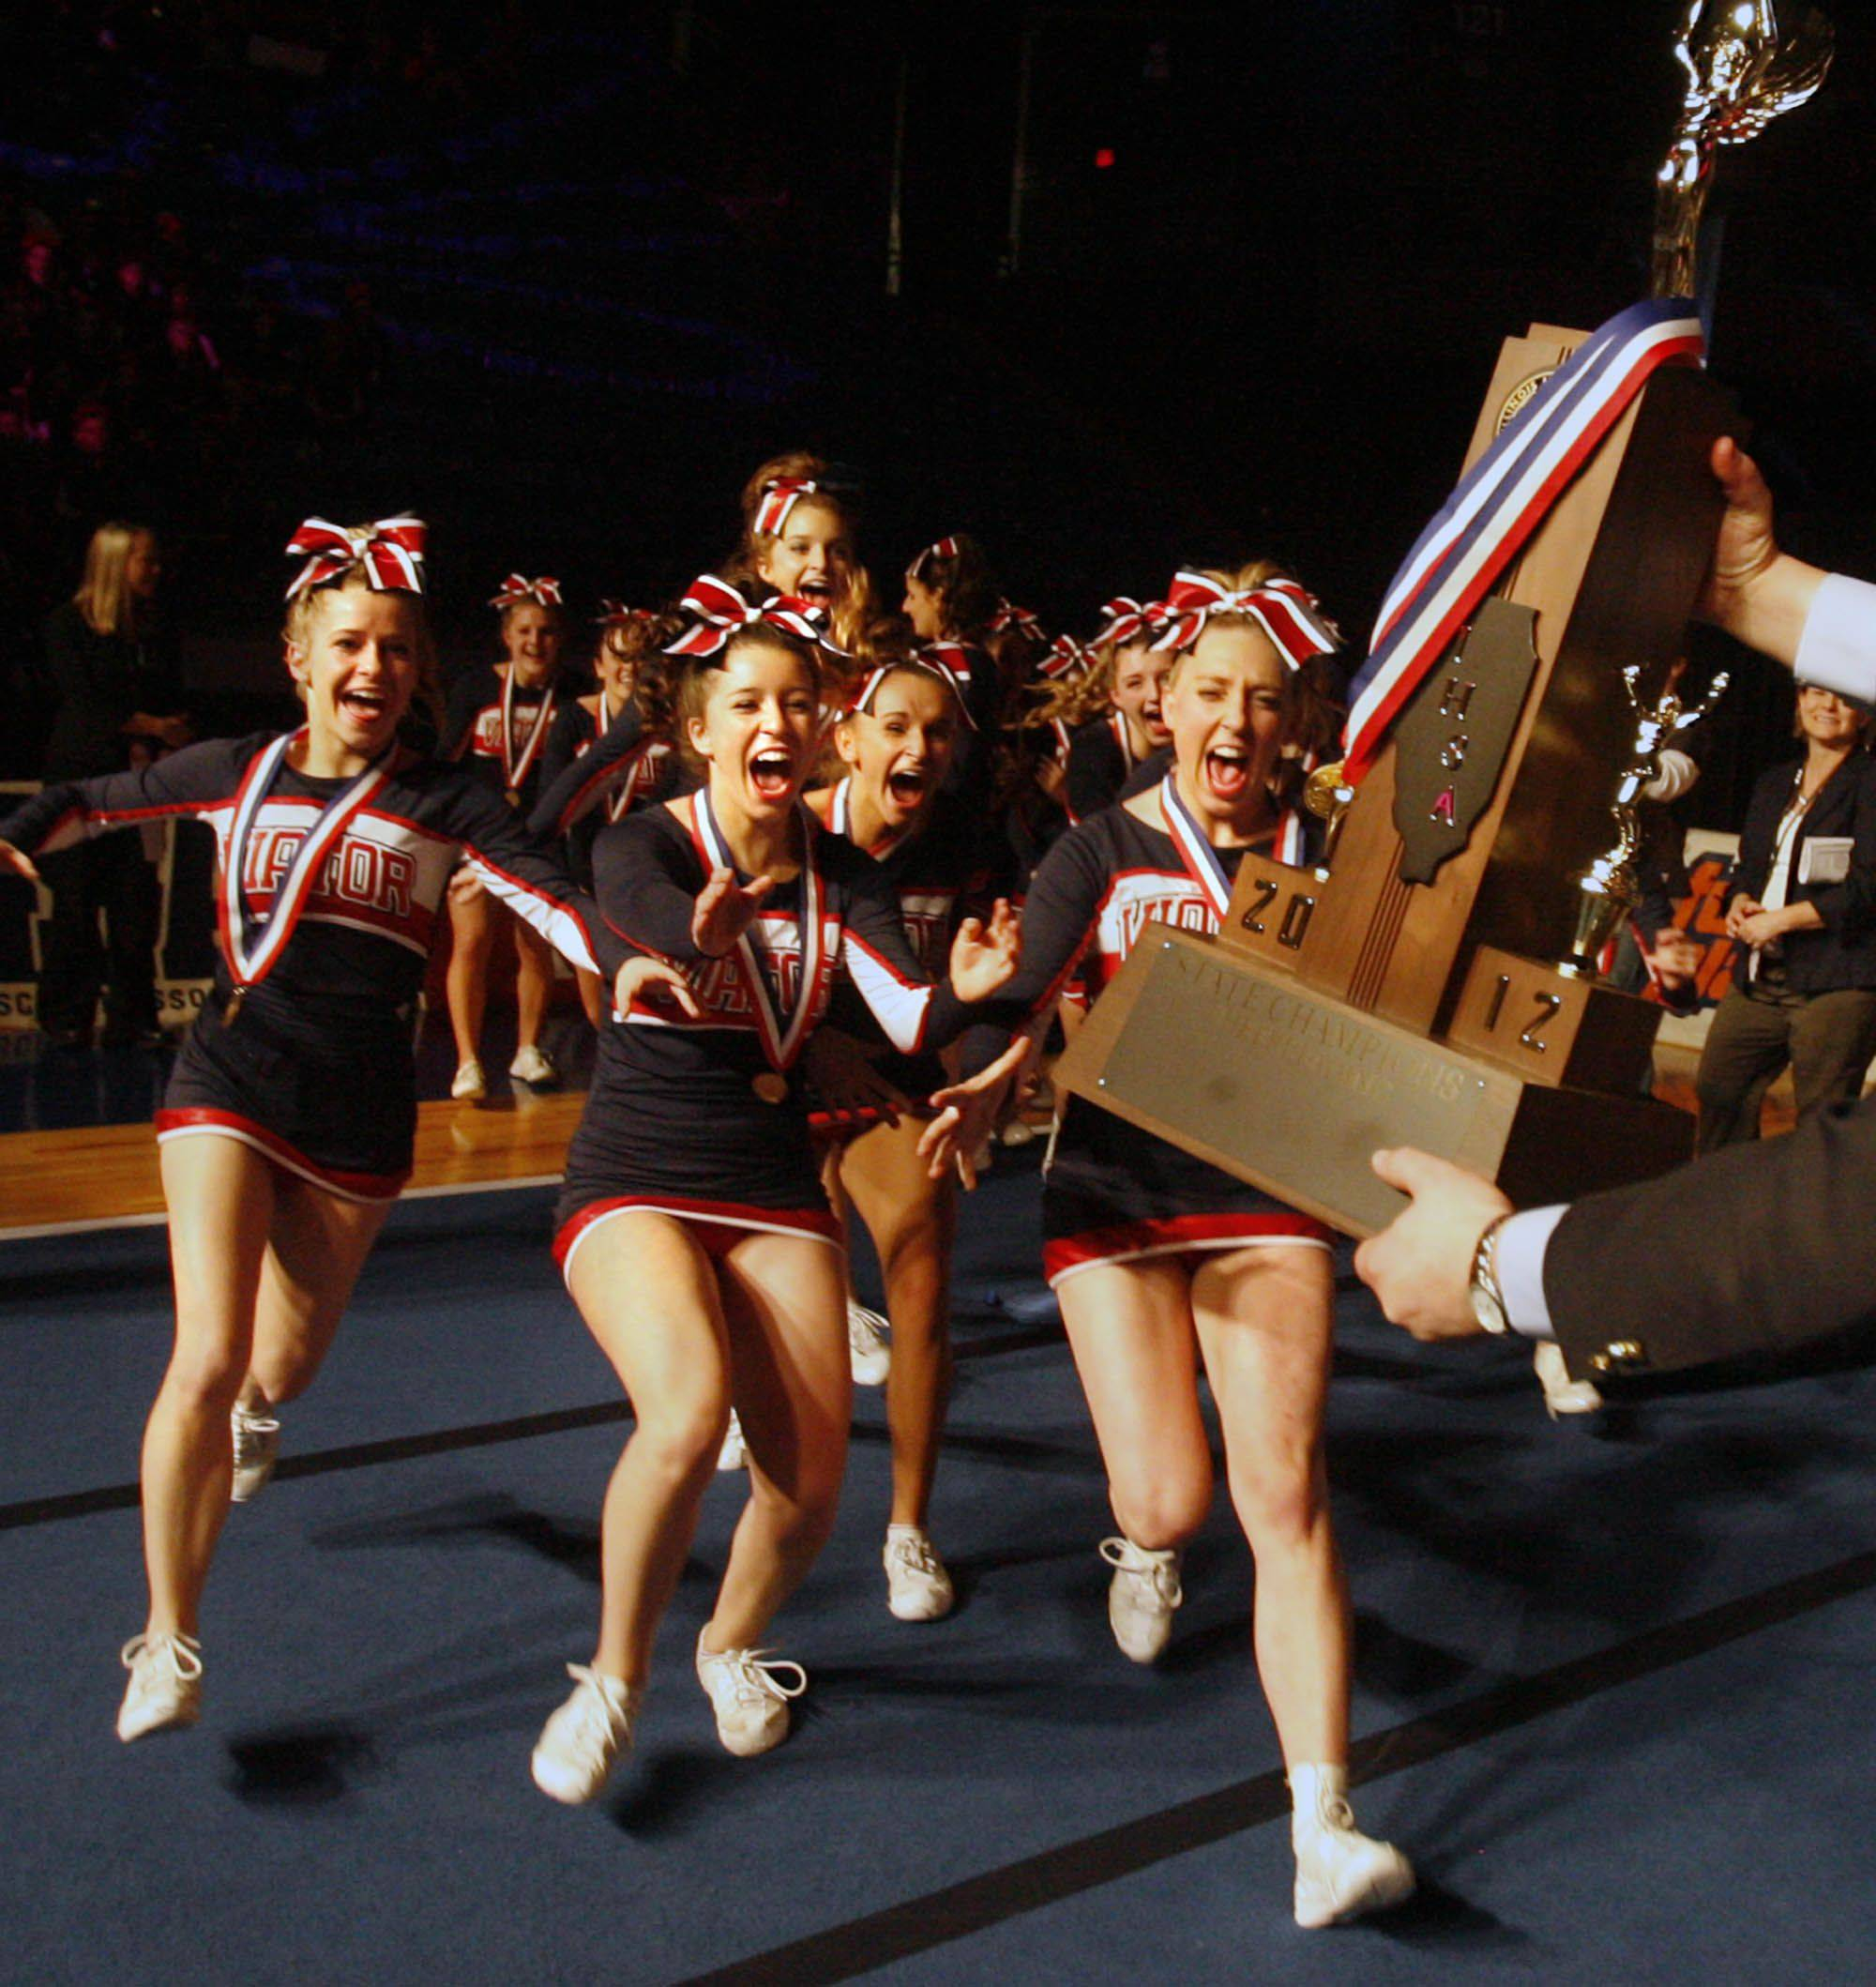 St. Viator high school cheerleading team rises to accept the first place trophy for the medium school category at IHSA cheerleading state finals at U.S. Cellular Coliseum in Bloomington on Saturday, February 4th.